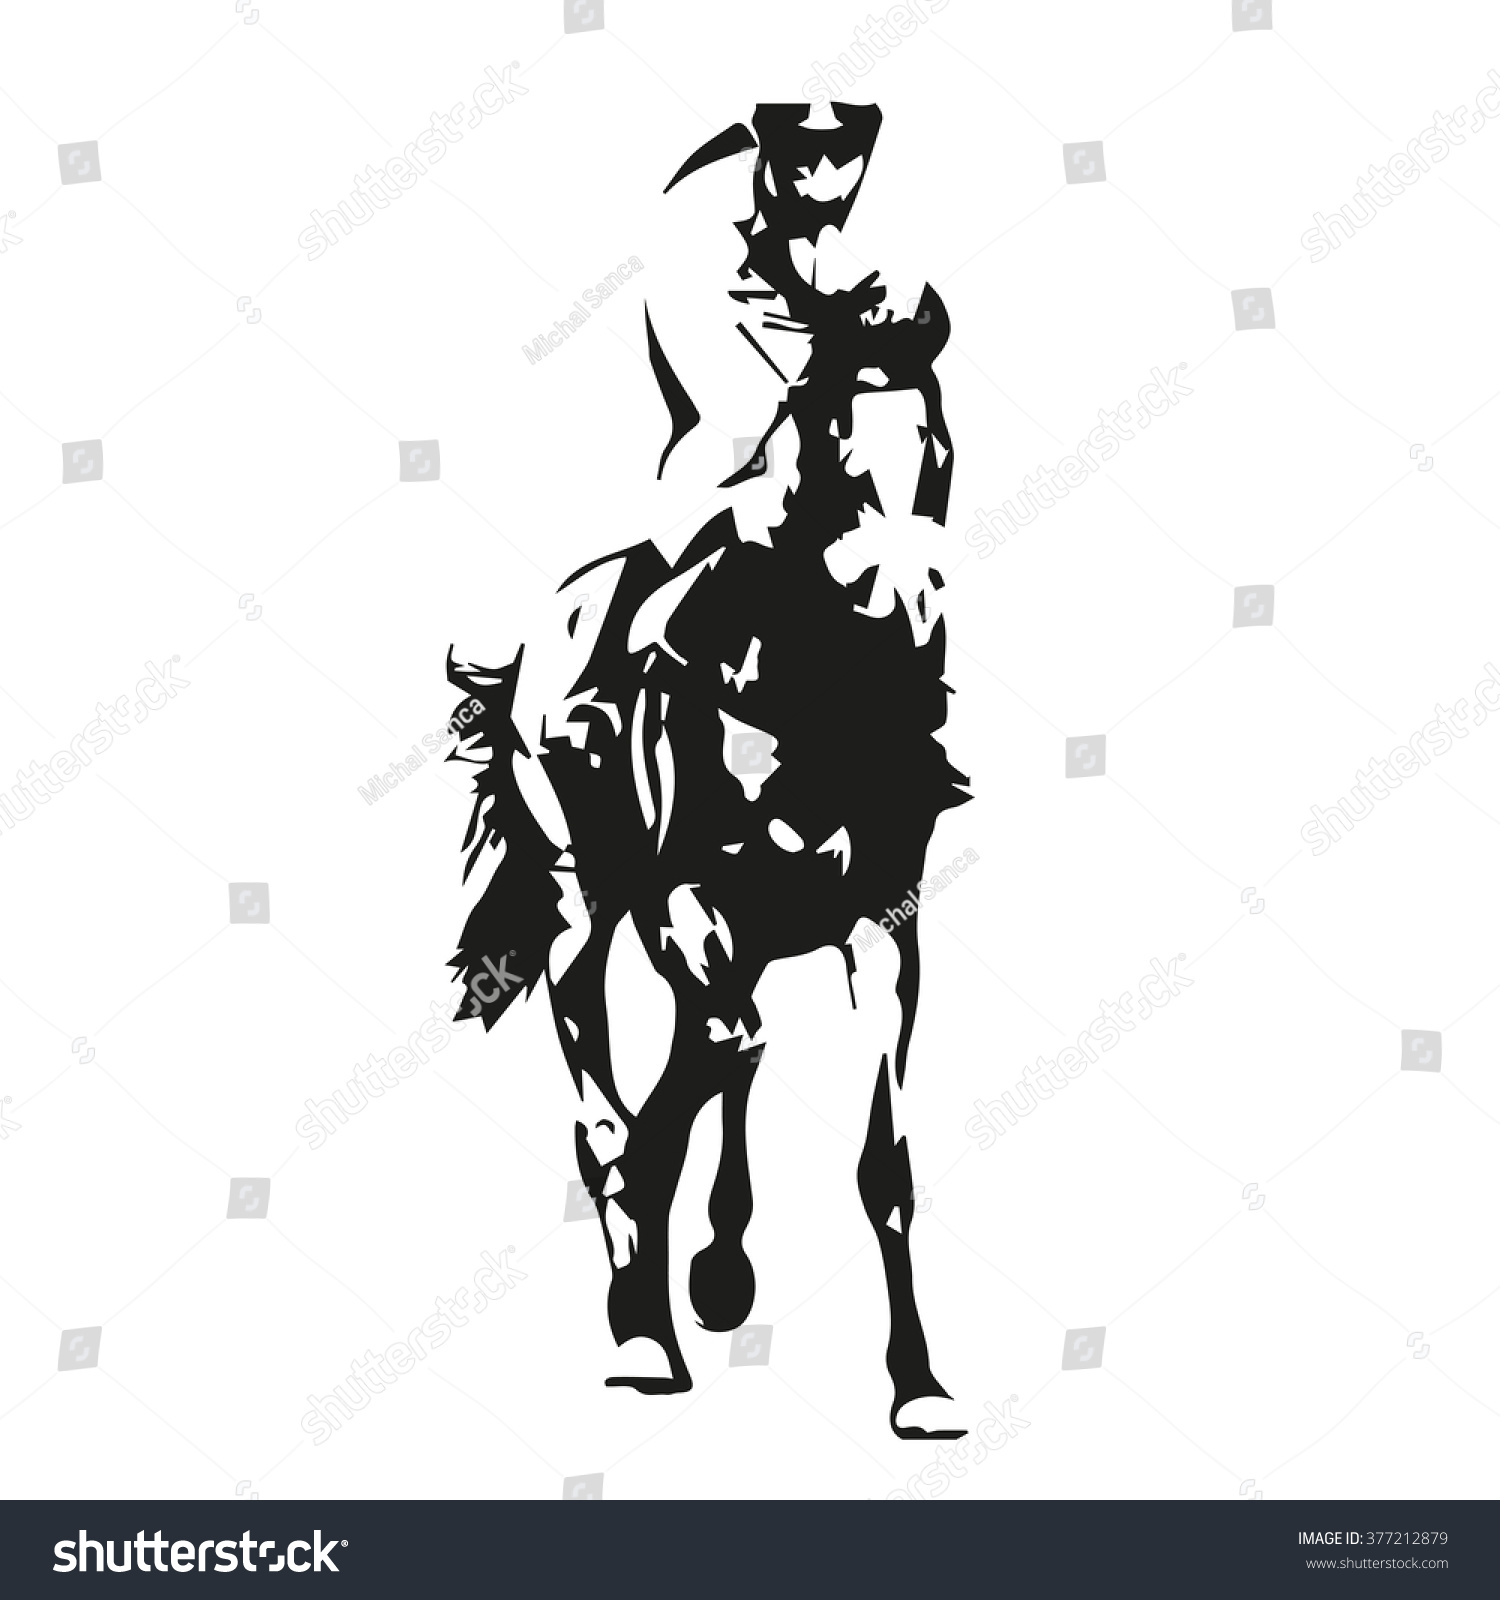 Horse Racing Vector Illustration Front View Stock Vector ...